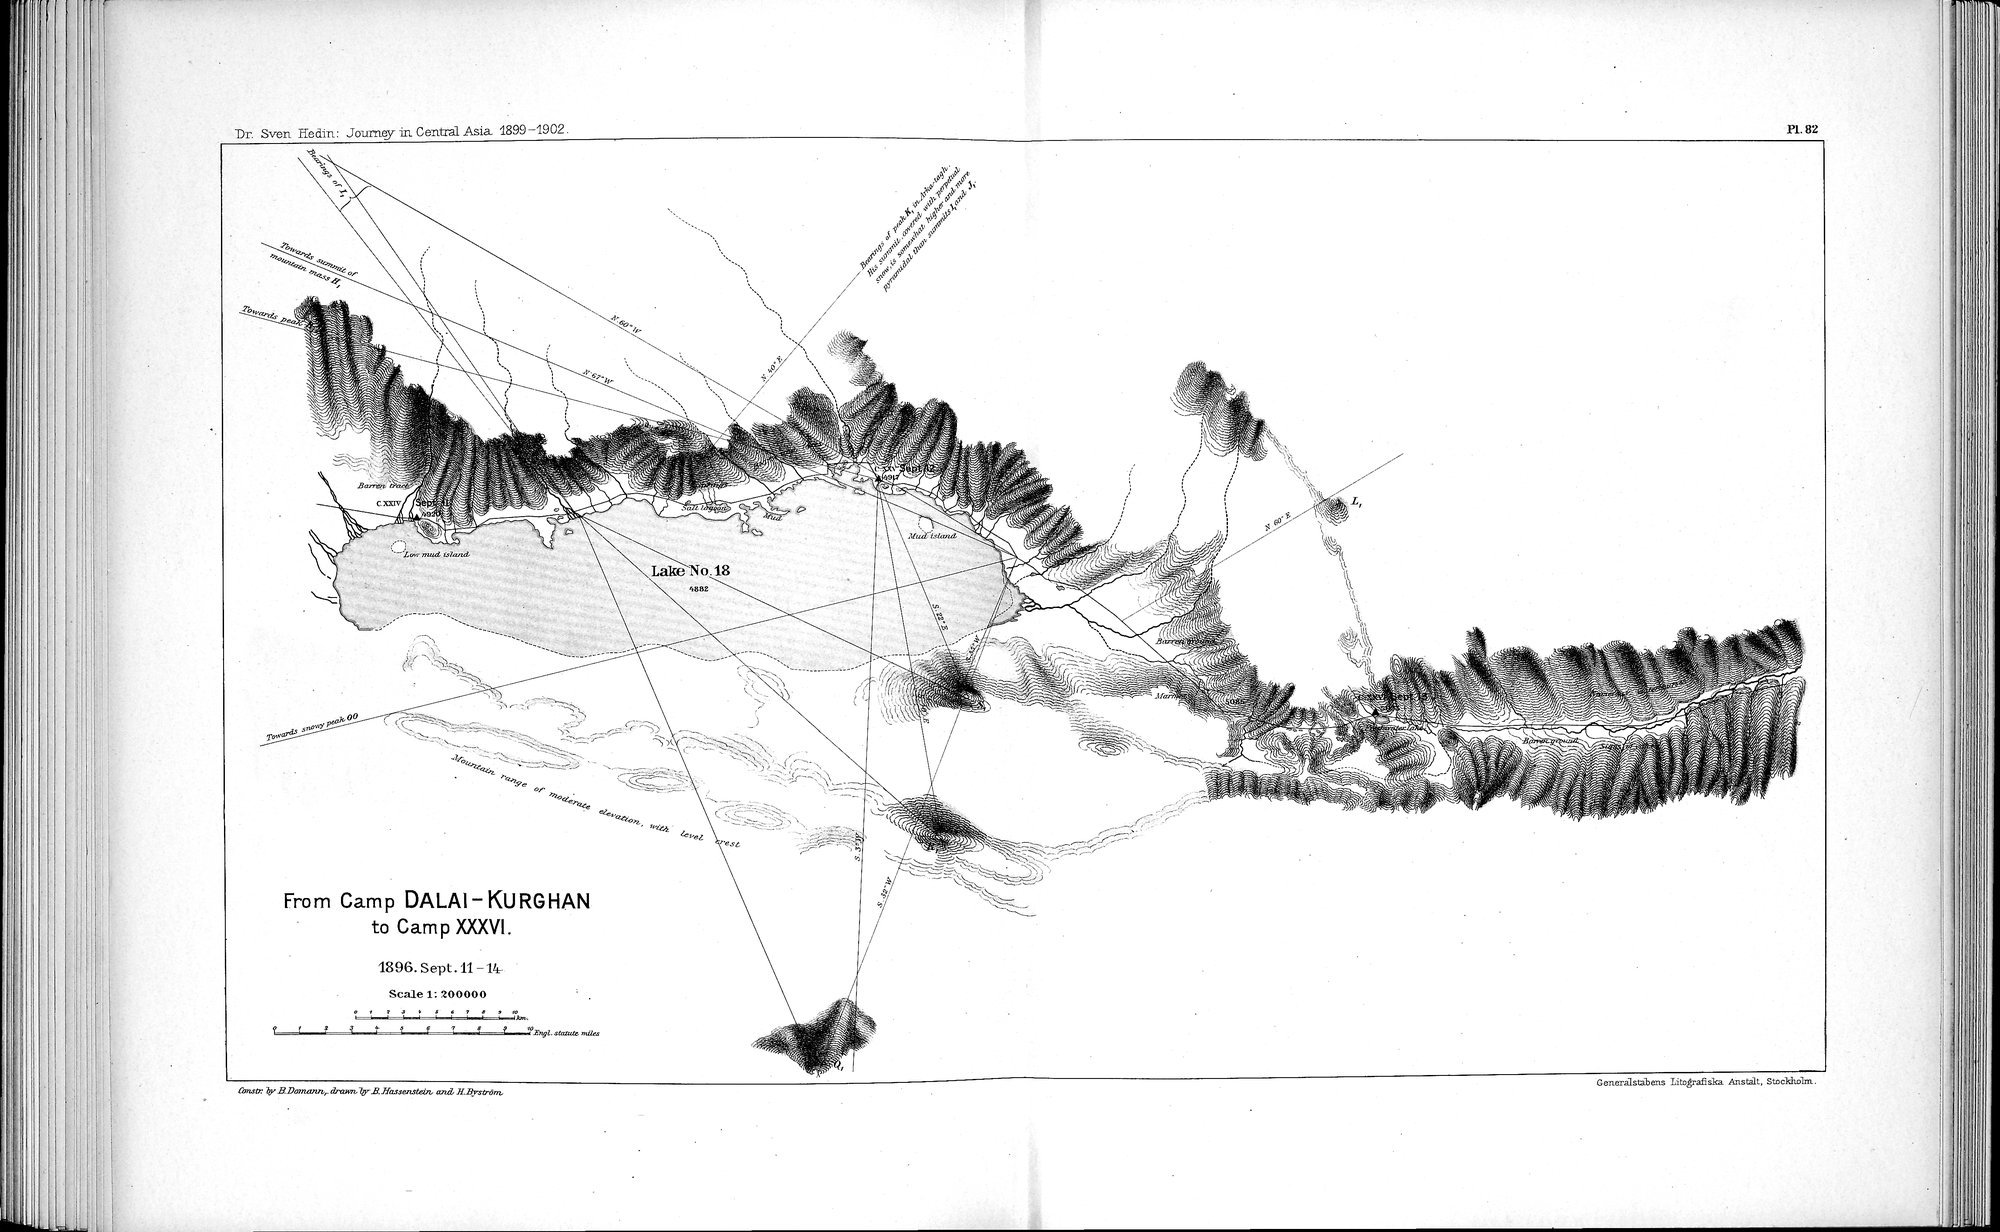 Scientific Results of a Journey in Central Asia, 1899-1902 : vol.8 / Page 148 (Grayscale High Resolution Image)